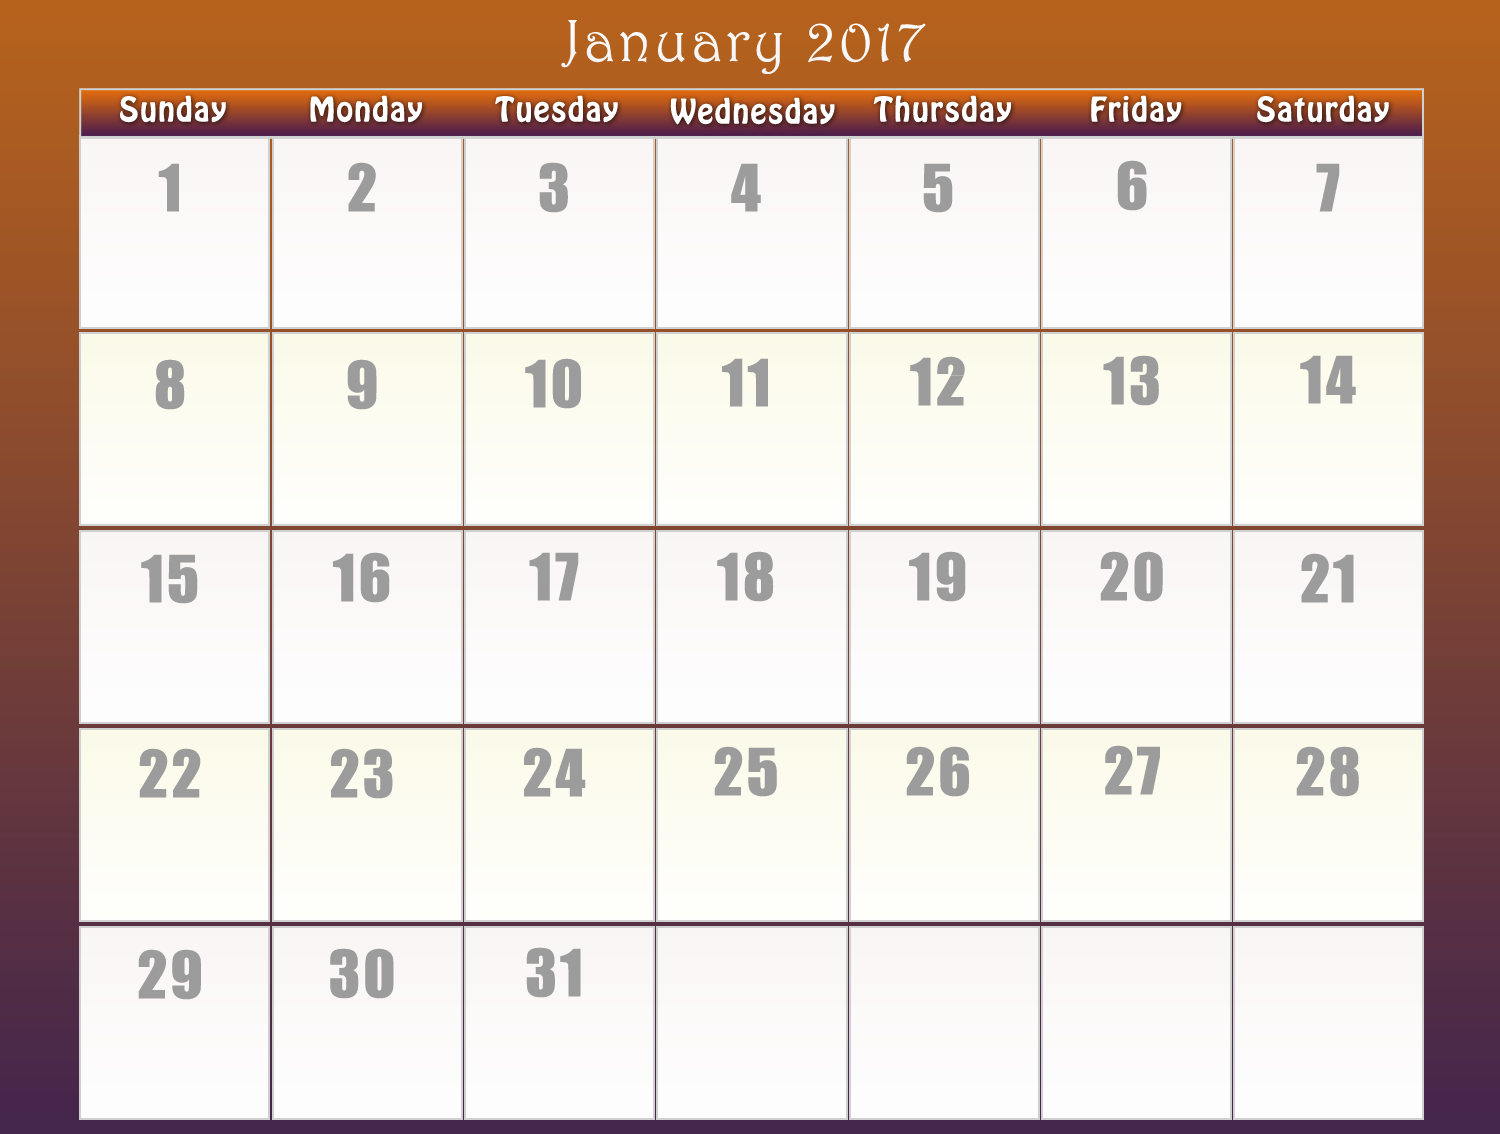 Calendar 2017 | Download Printable calendars of 2017 for free